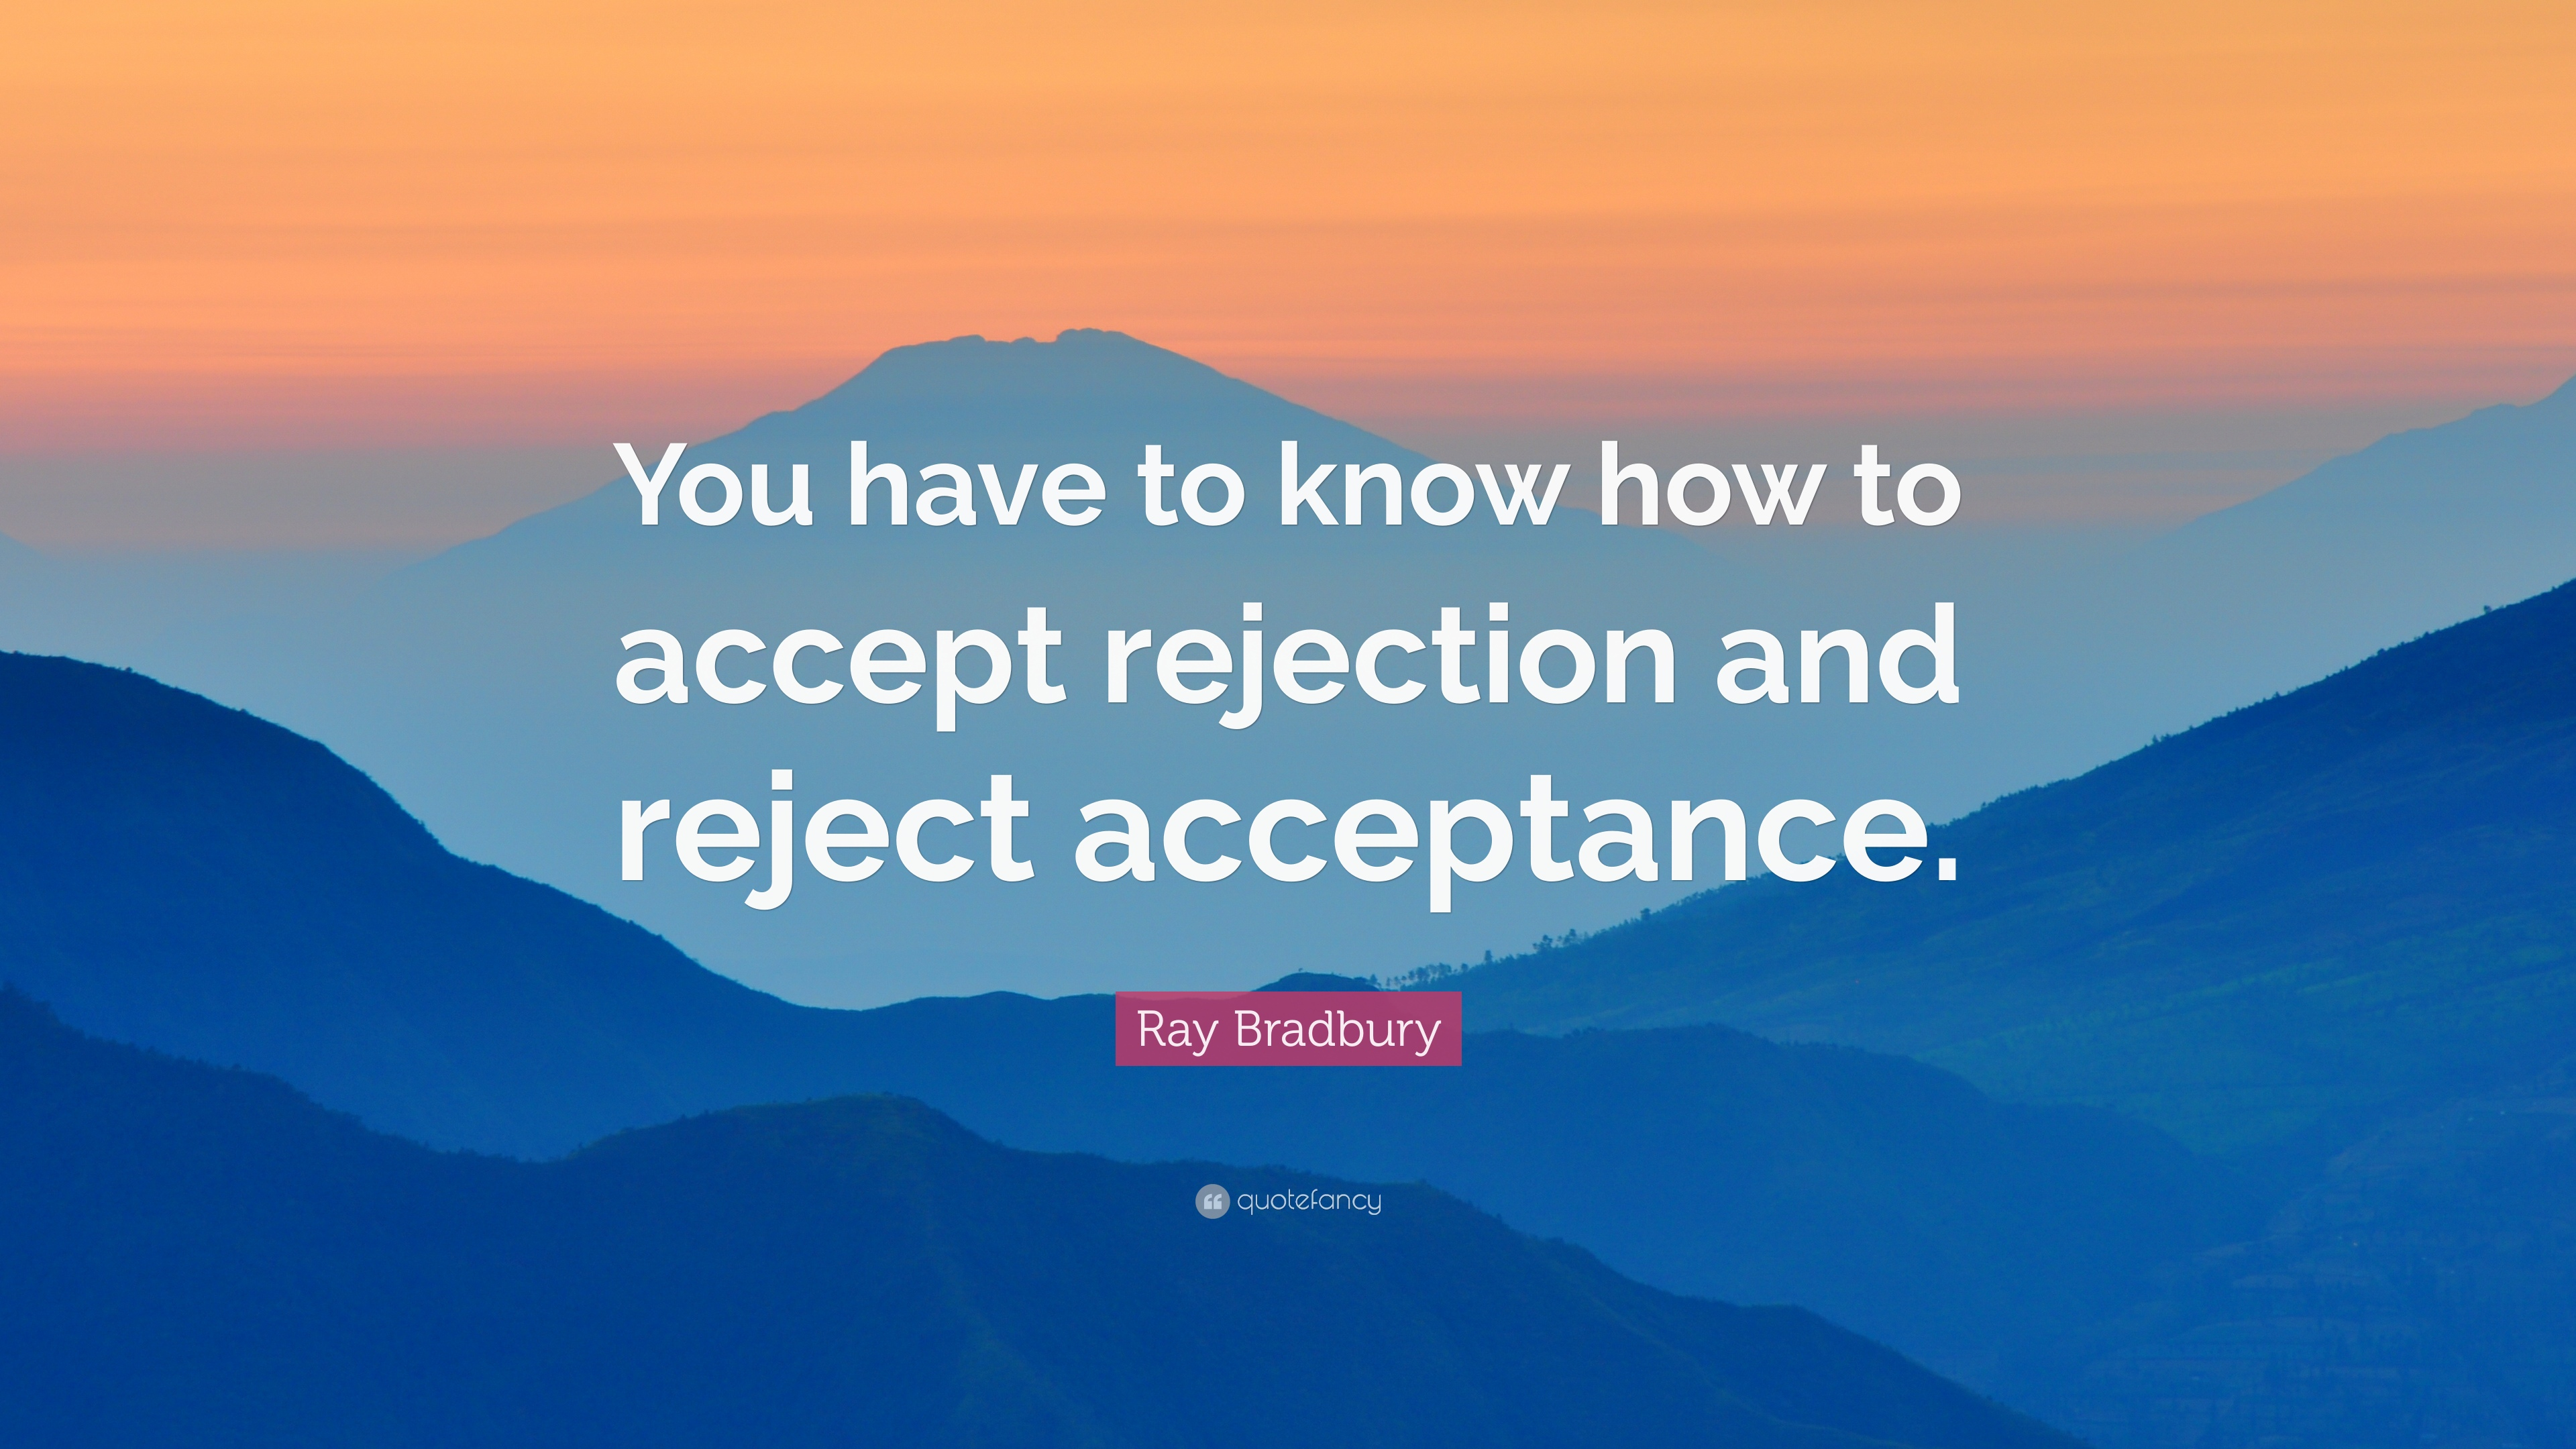 How to Accept Rejection